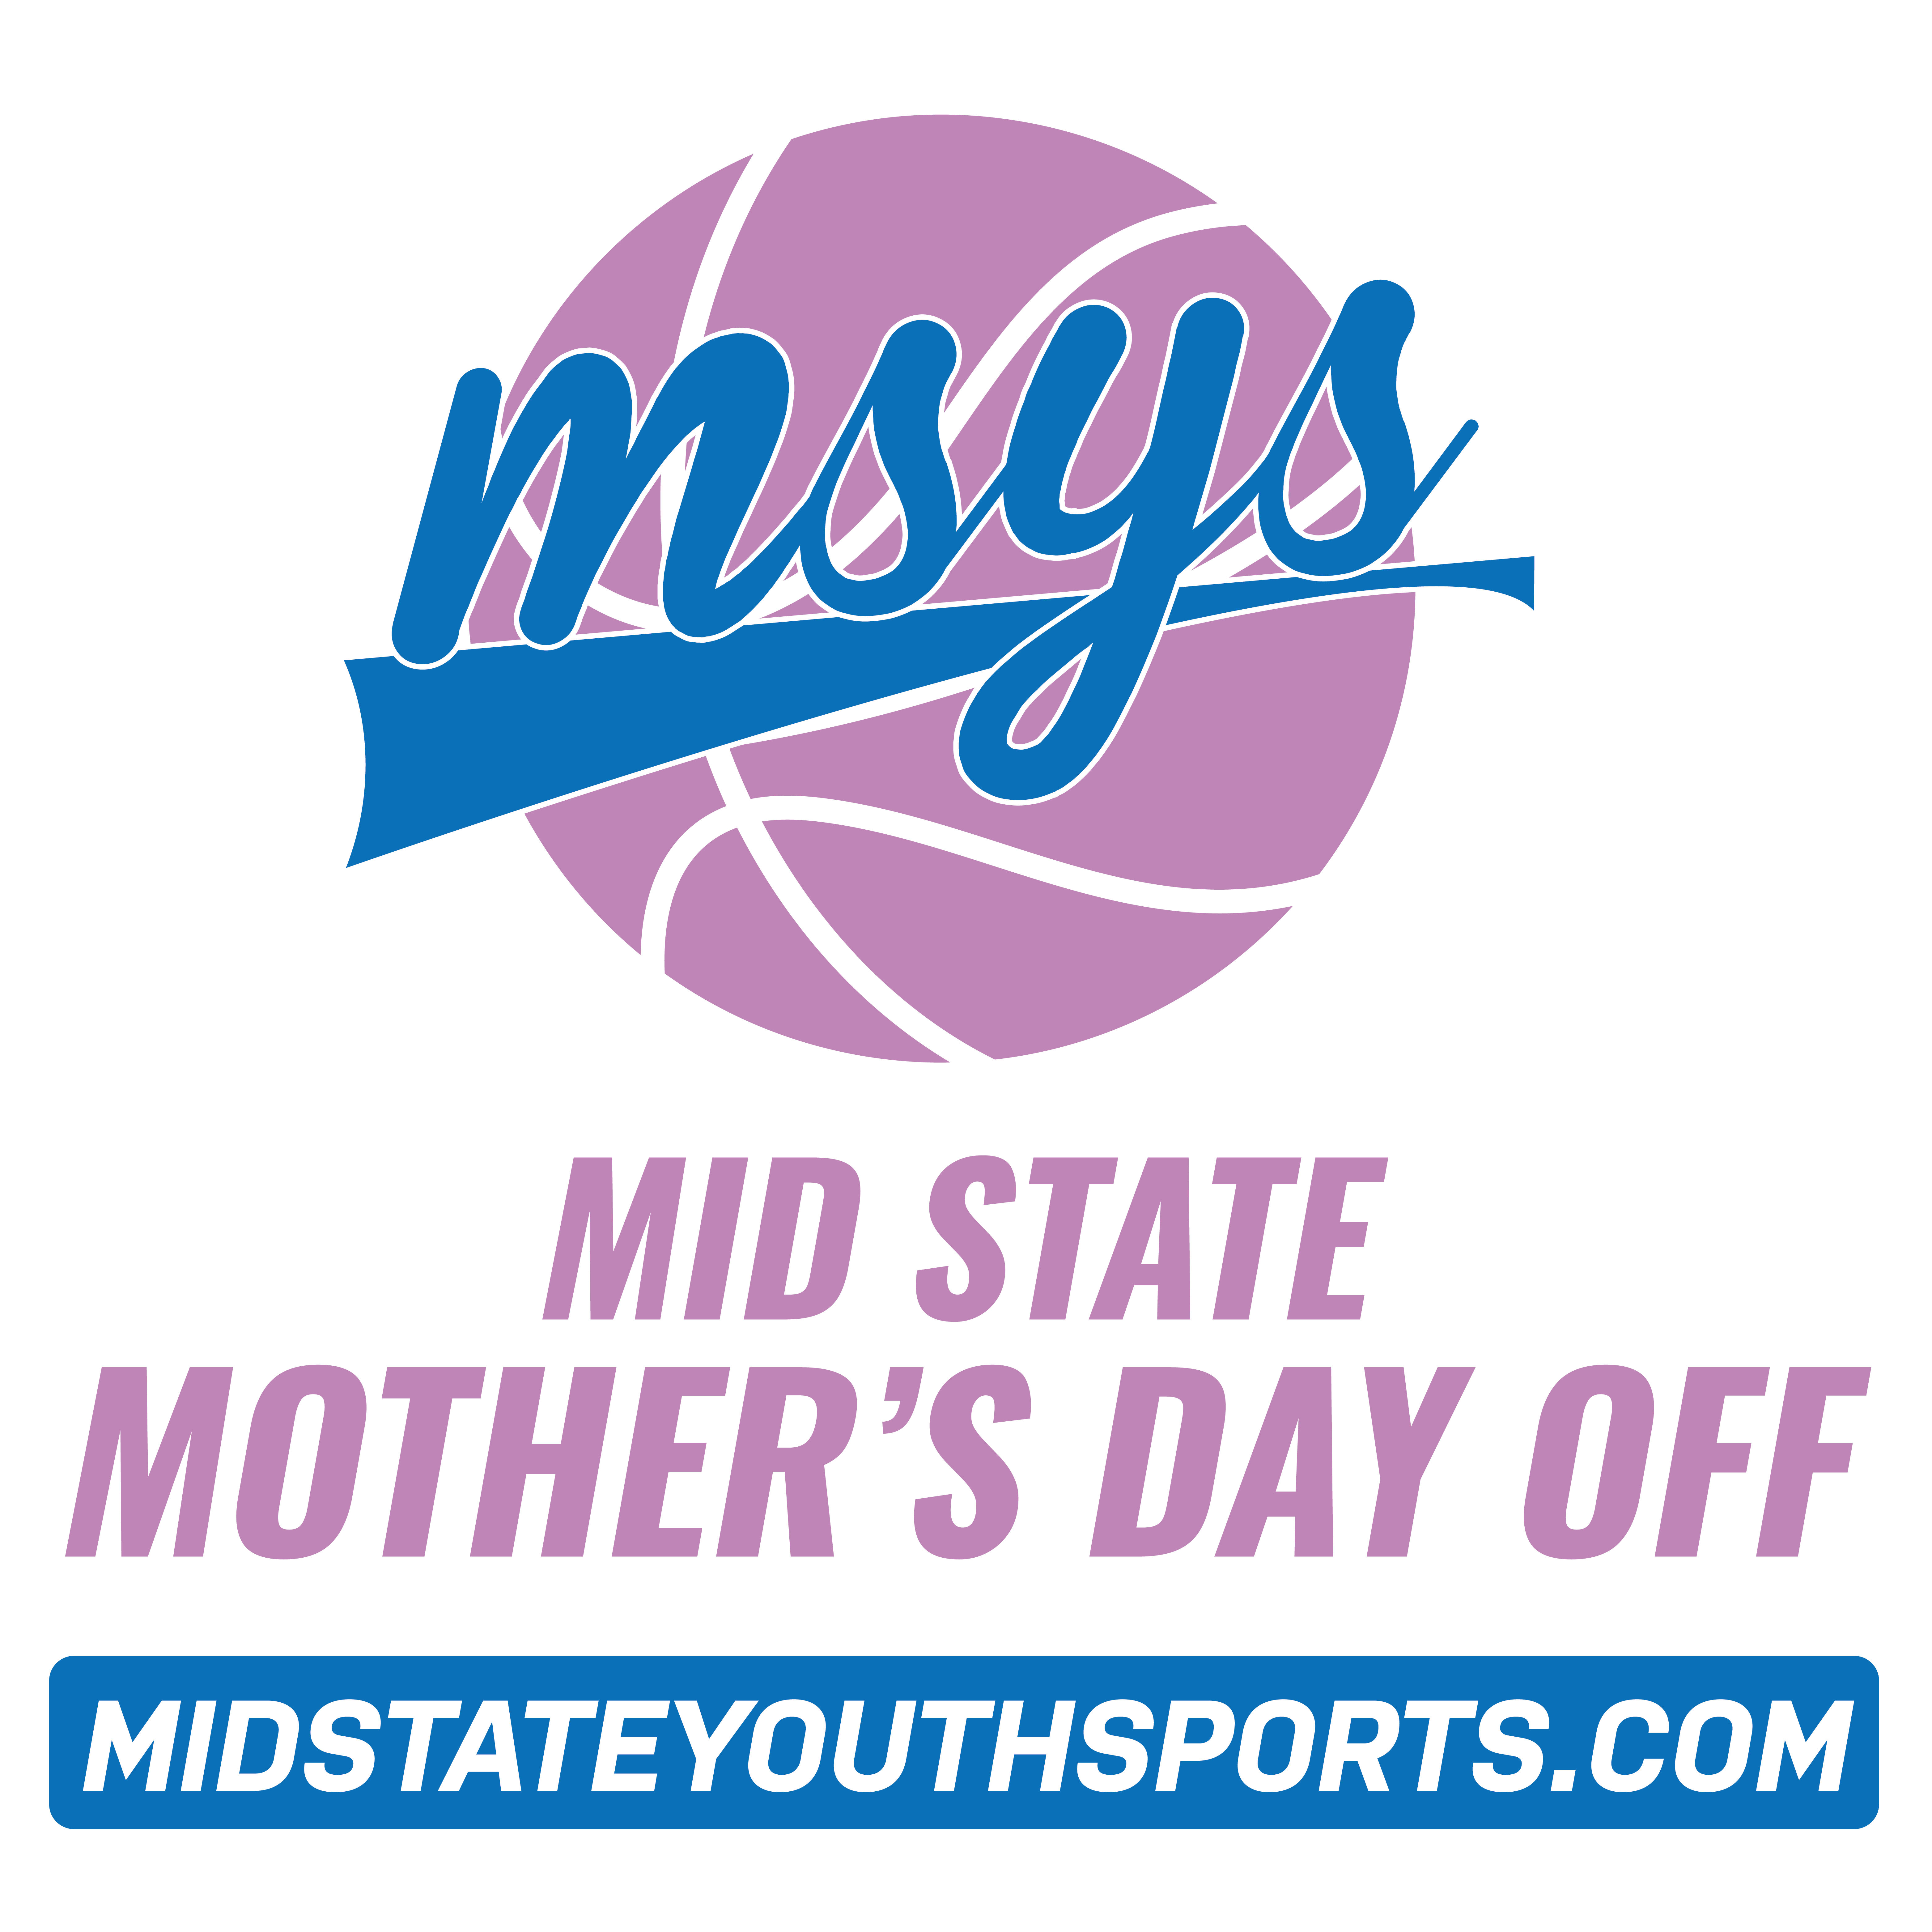 MSYS 5th Annual Mid State Mother's Day Off Tournament